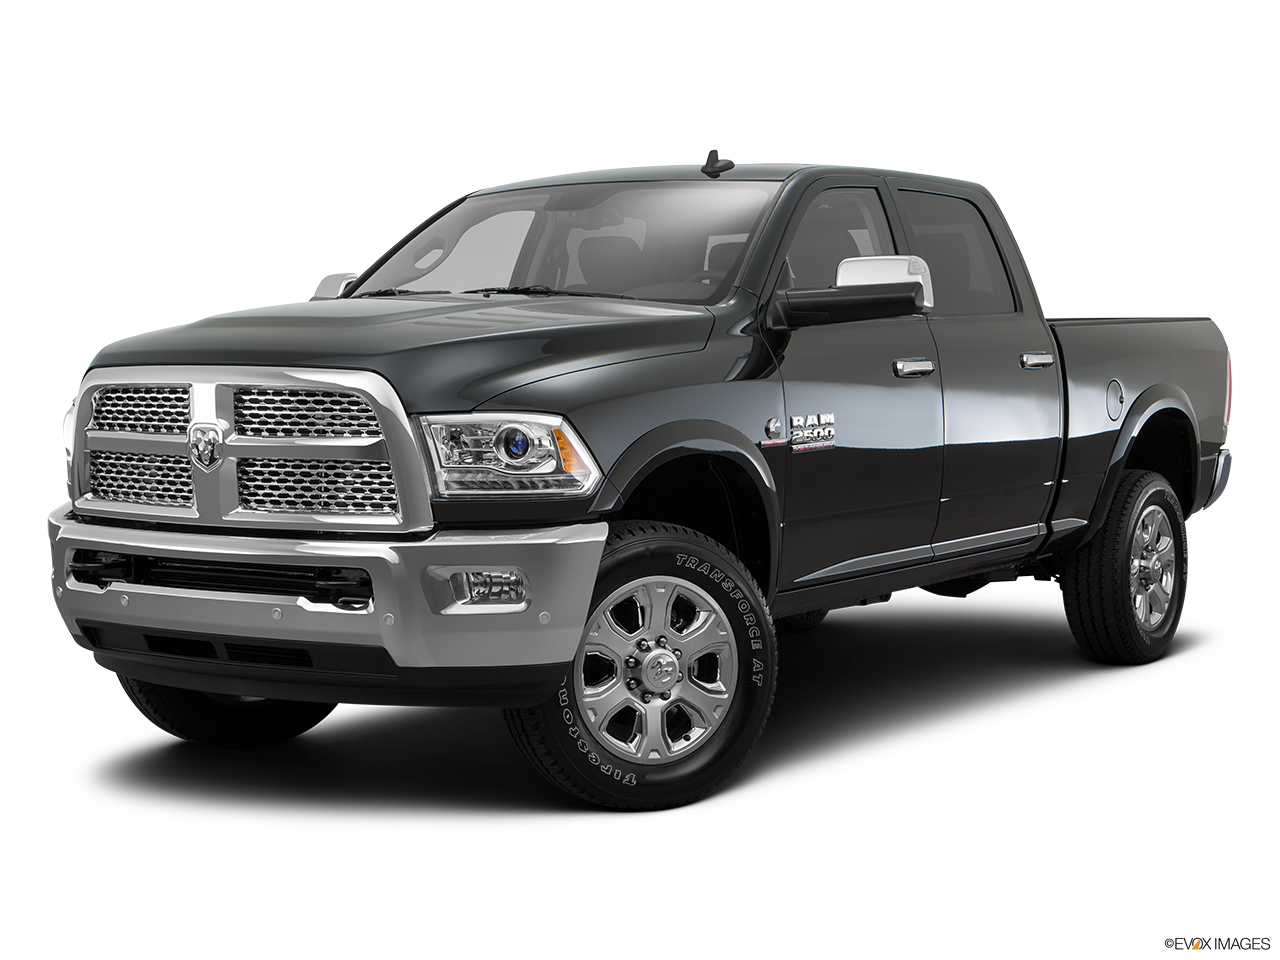 Test Drive A 2016 RAM 2500 at Sherman Dodge Chrysler Jeep RAM Chicago